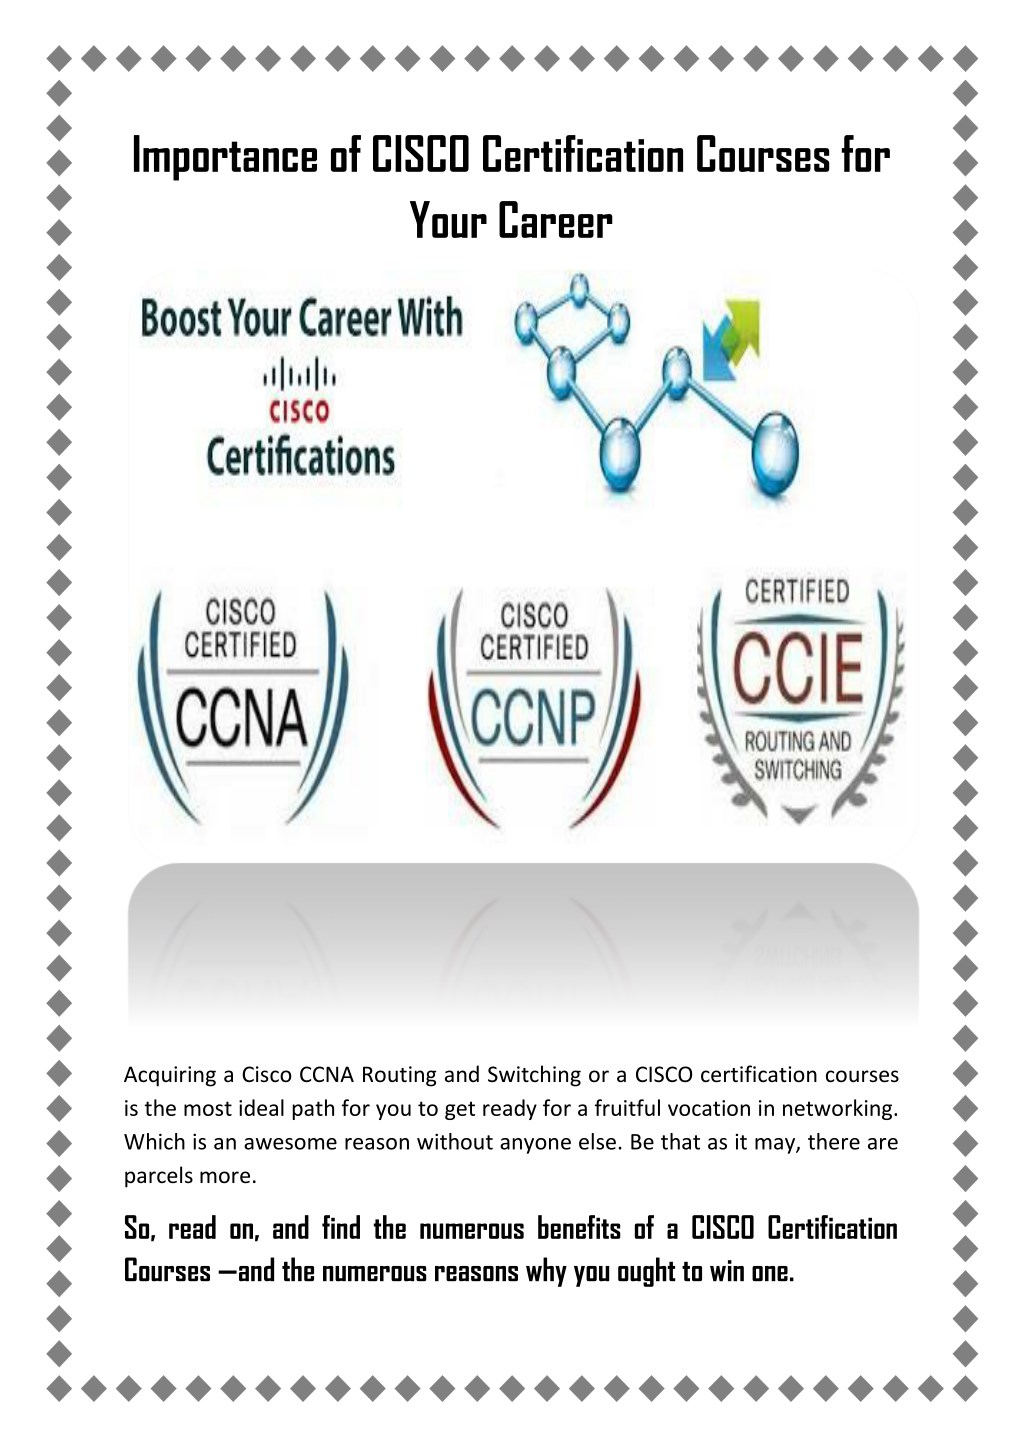 PPT - Importance of CISCO Certification Courses for Your